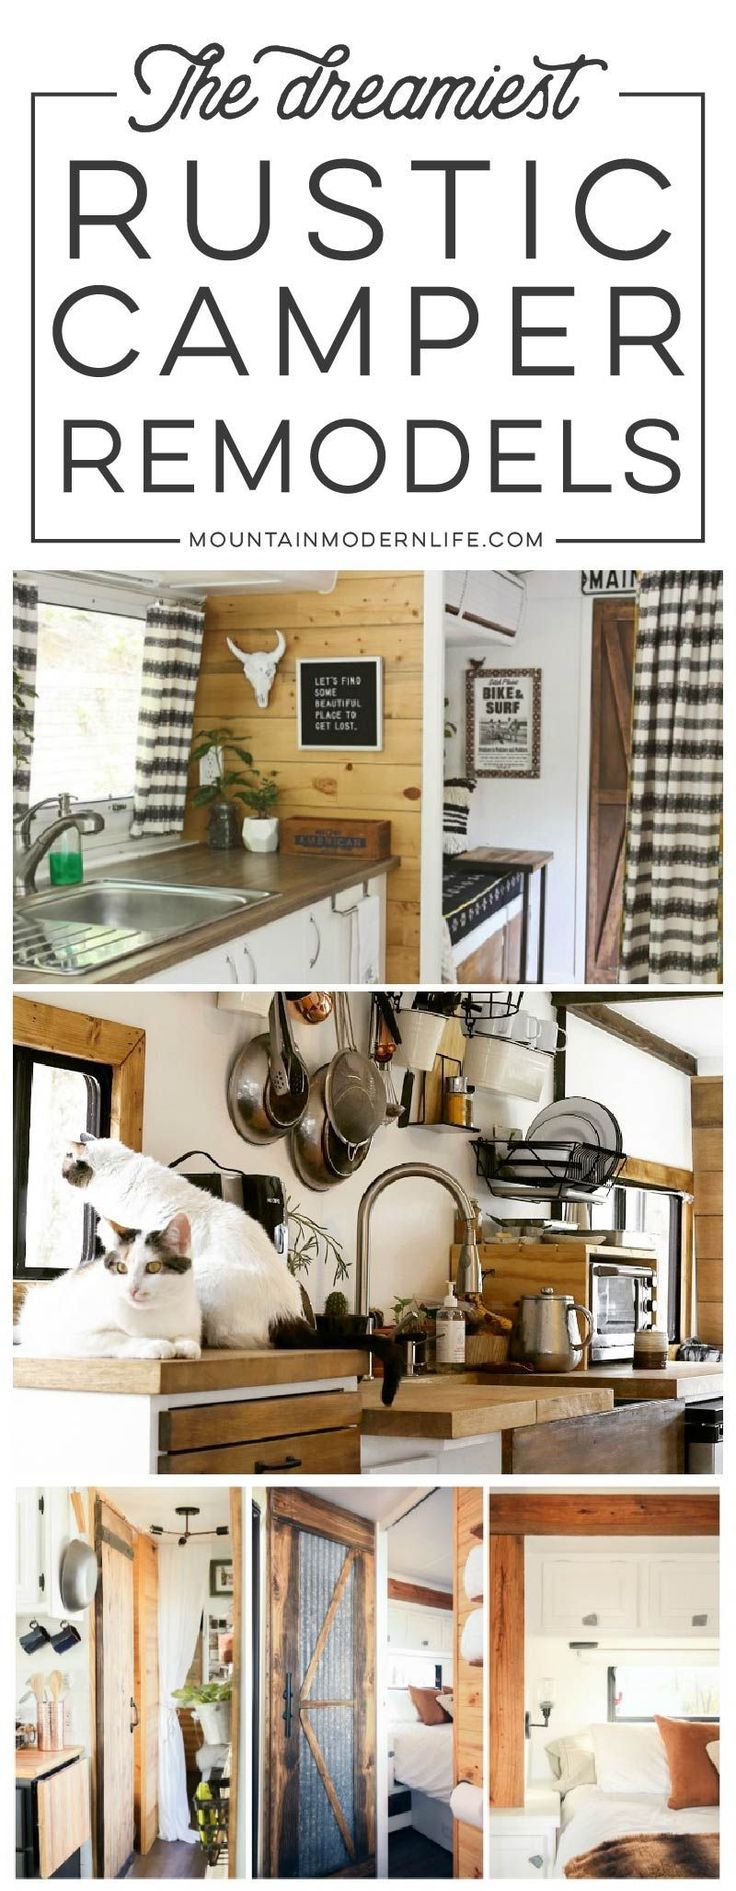 best camper remodeling images on pinterest